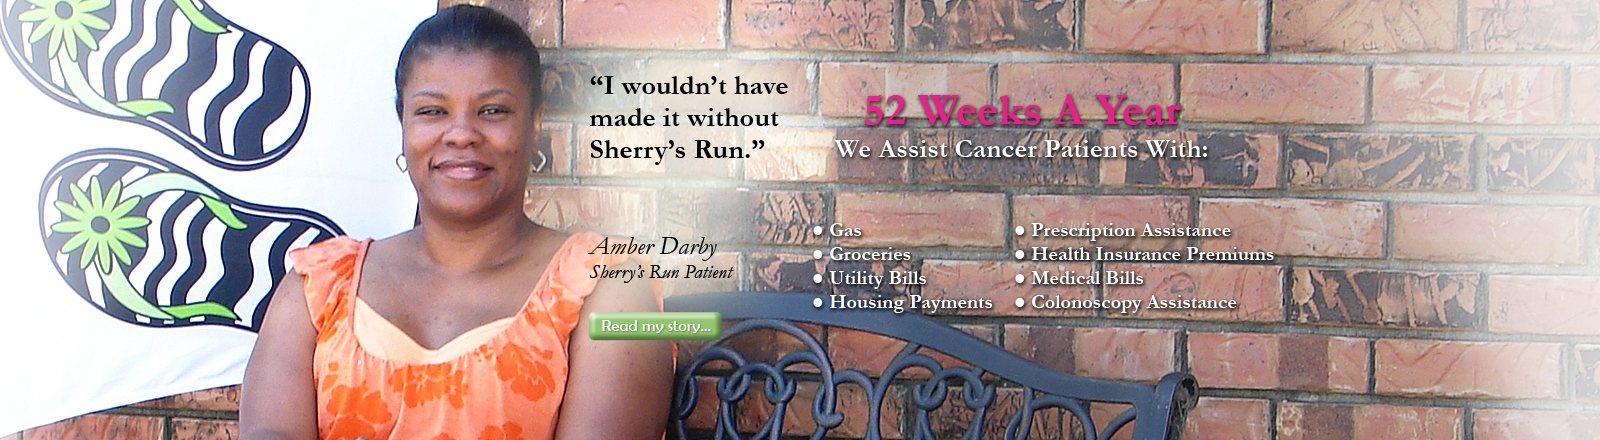 Sherry's Run - Amber Darby